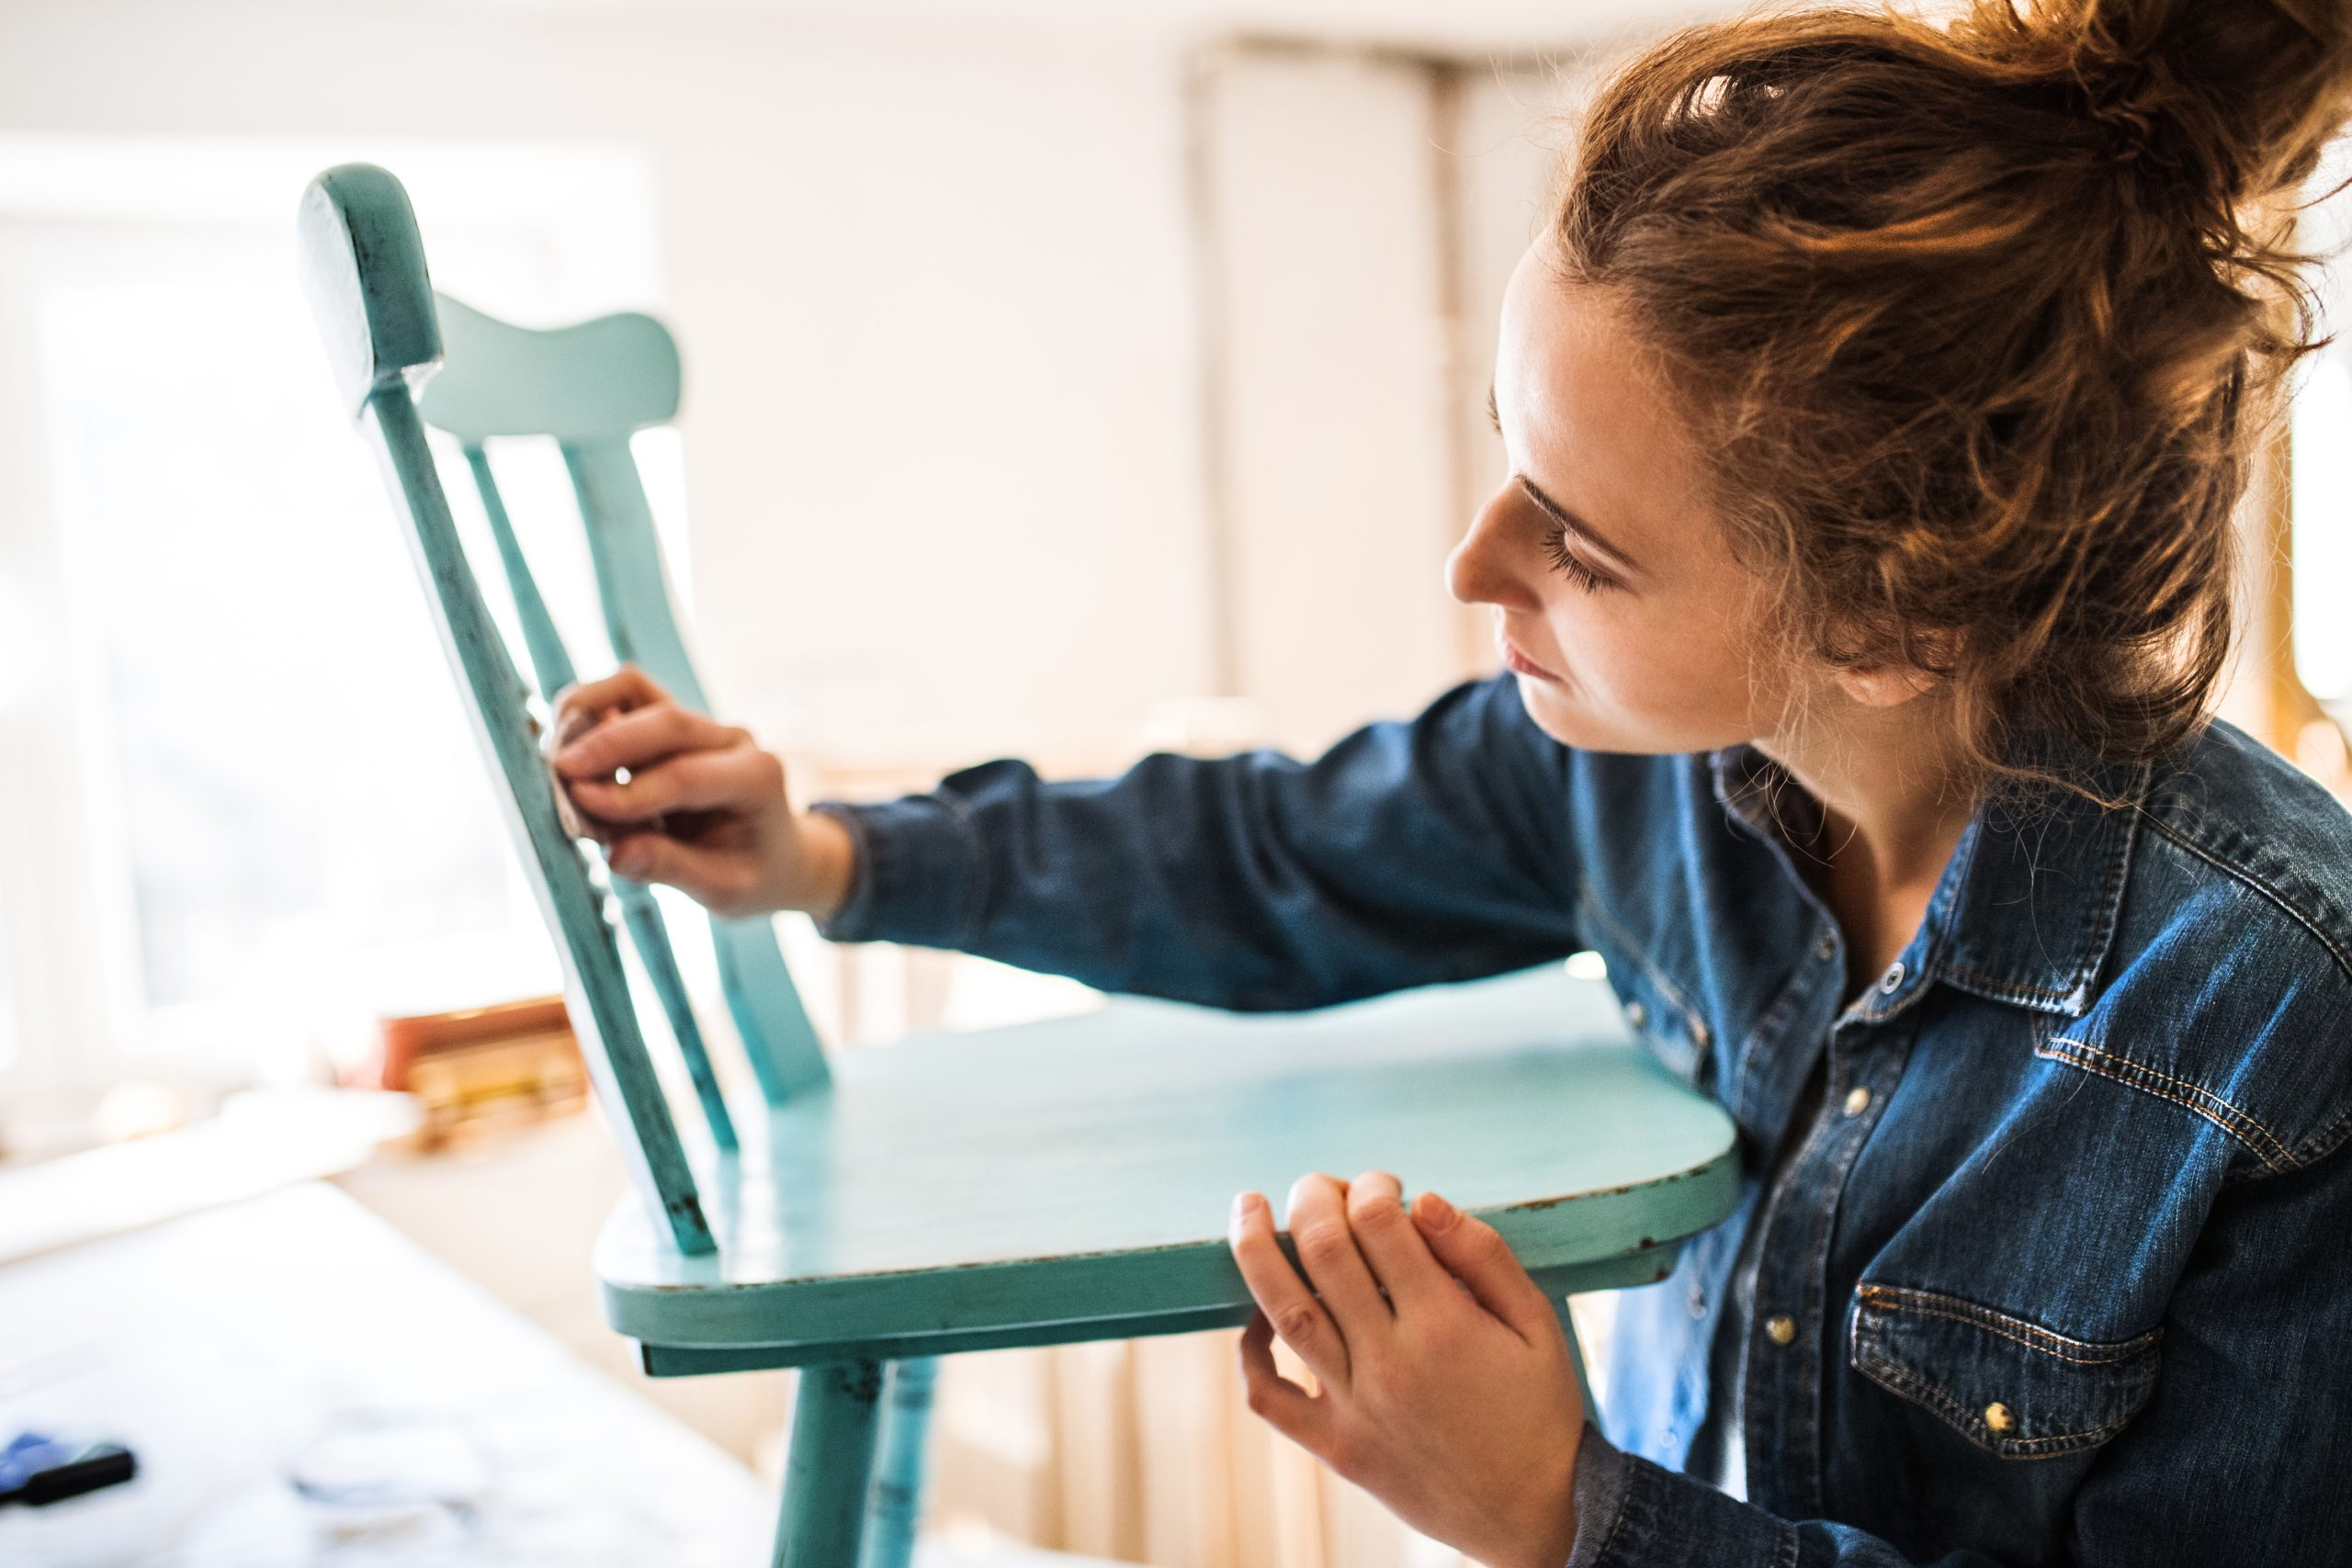 Sanding a wood chair. This is the first step for preparing to spray paint wood furniture.